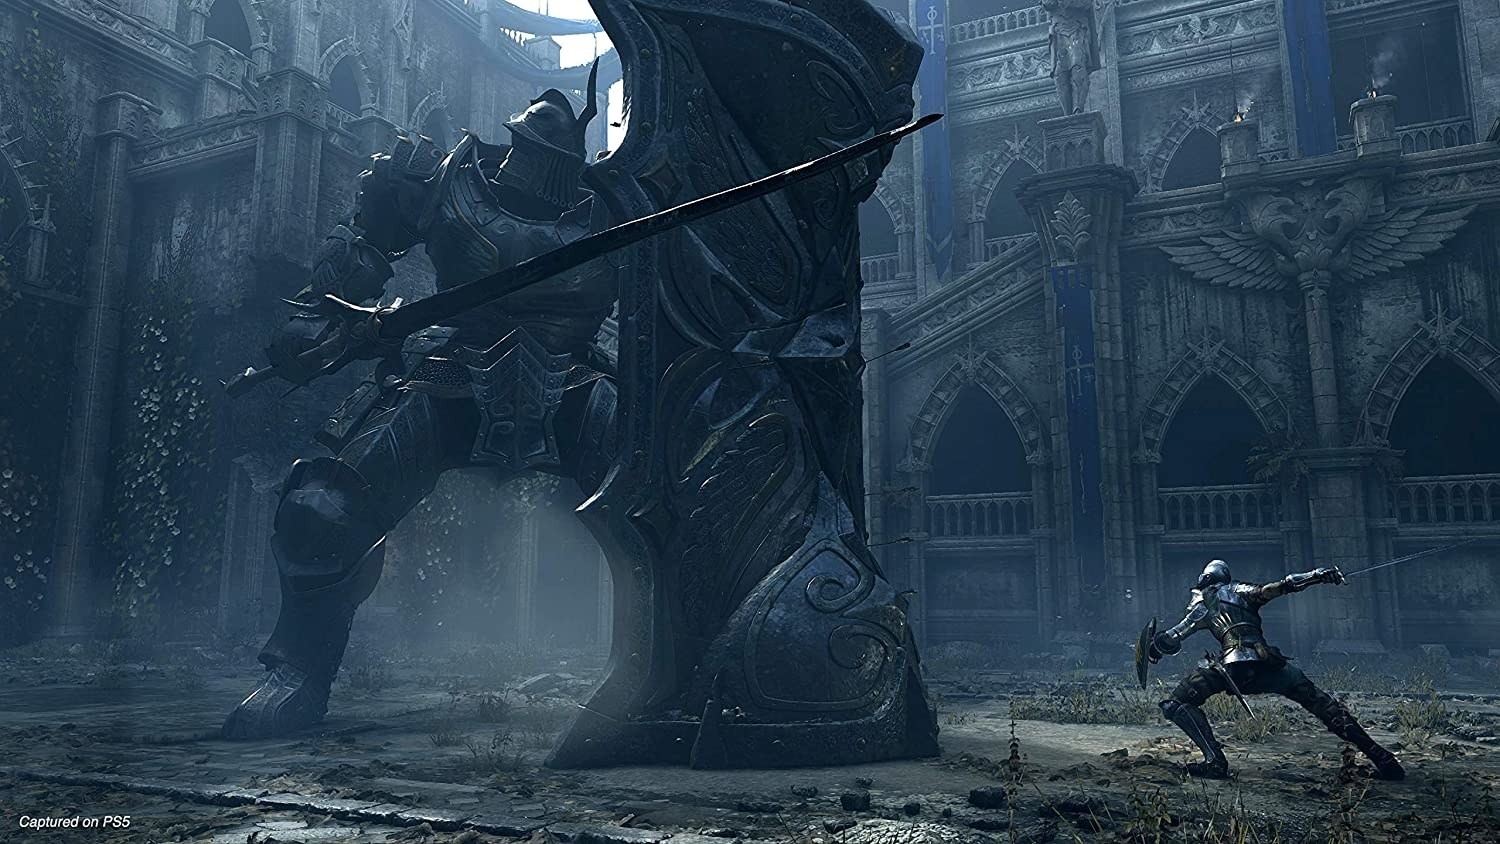 A giant knight faces off against a much smaller knight